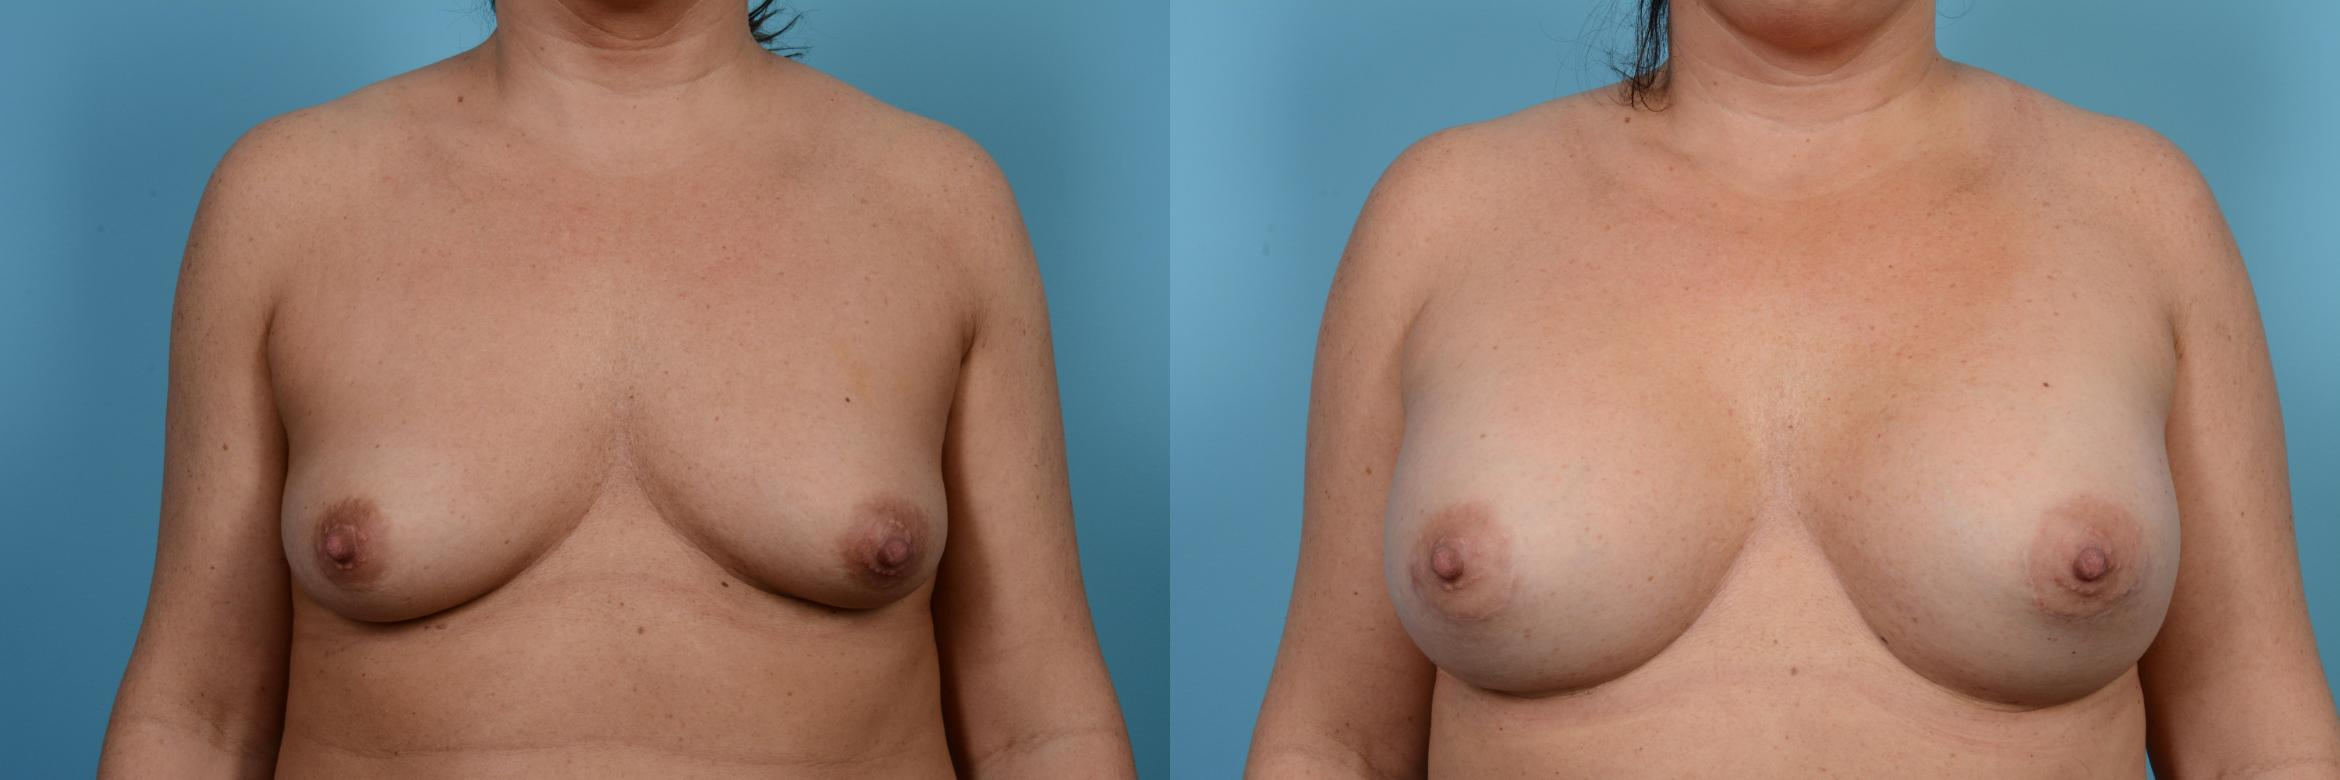 Breast Augmentation Case 474 Before & After View #1 | Chicago, IL | TLKM Plastic Surgery